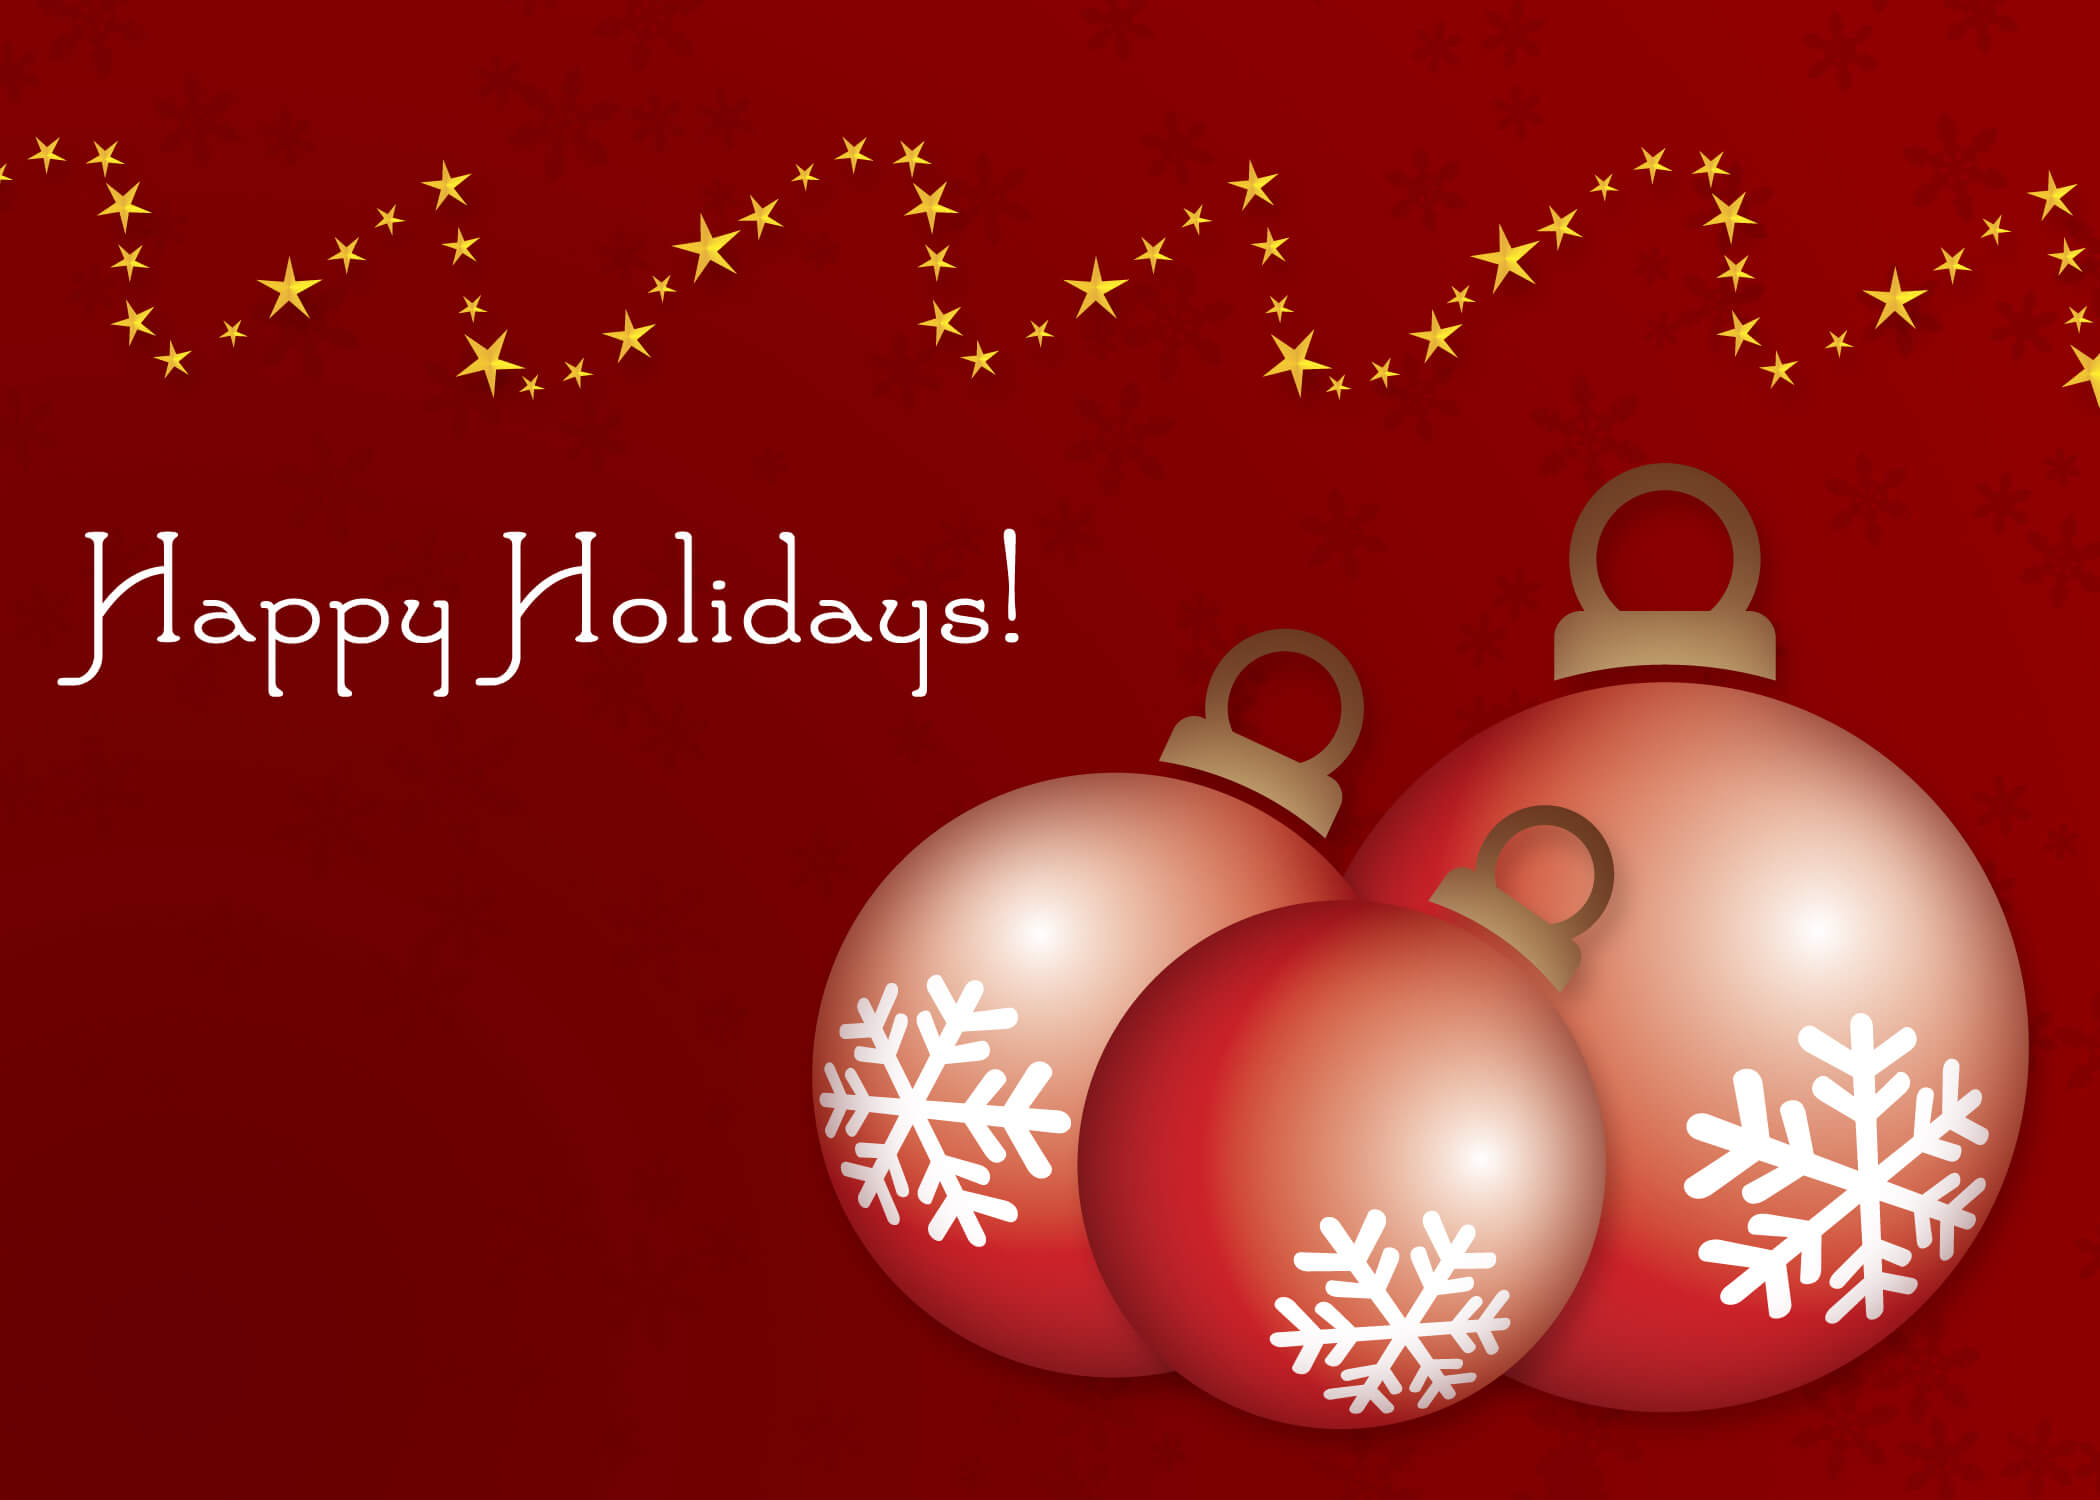 16 Holiday Greeting Card Template Images - Free Christmas In Free Holiday Photo Card Templates